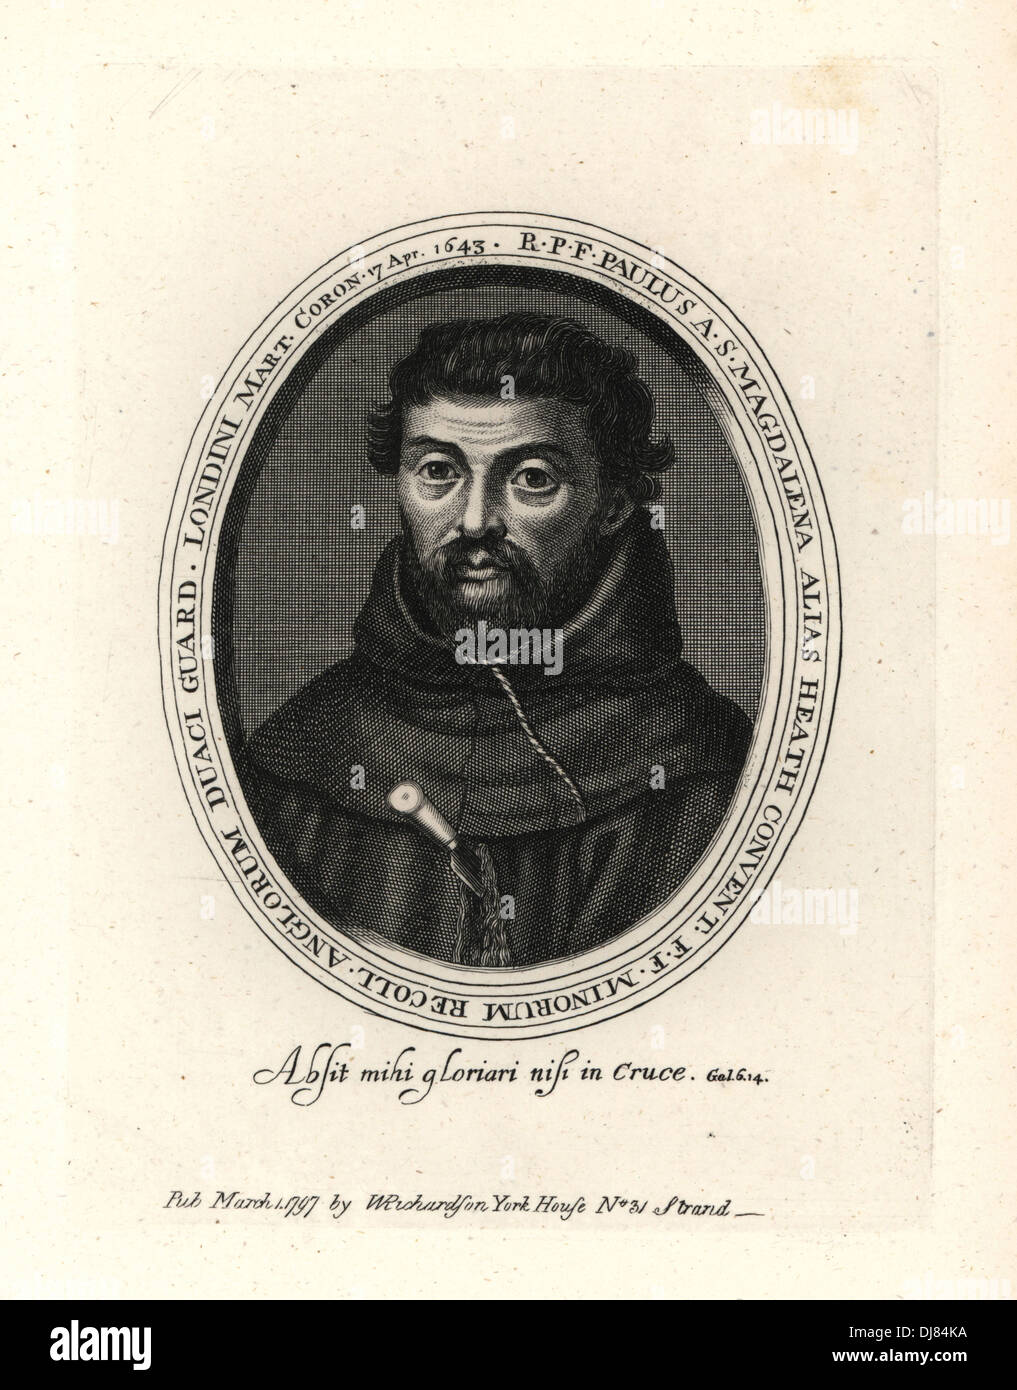 Blessed Henry Heath, Franciscan martyr, hanged in London in 1643. - Stock Image